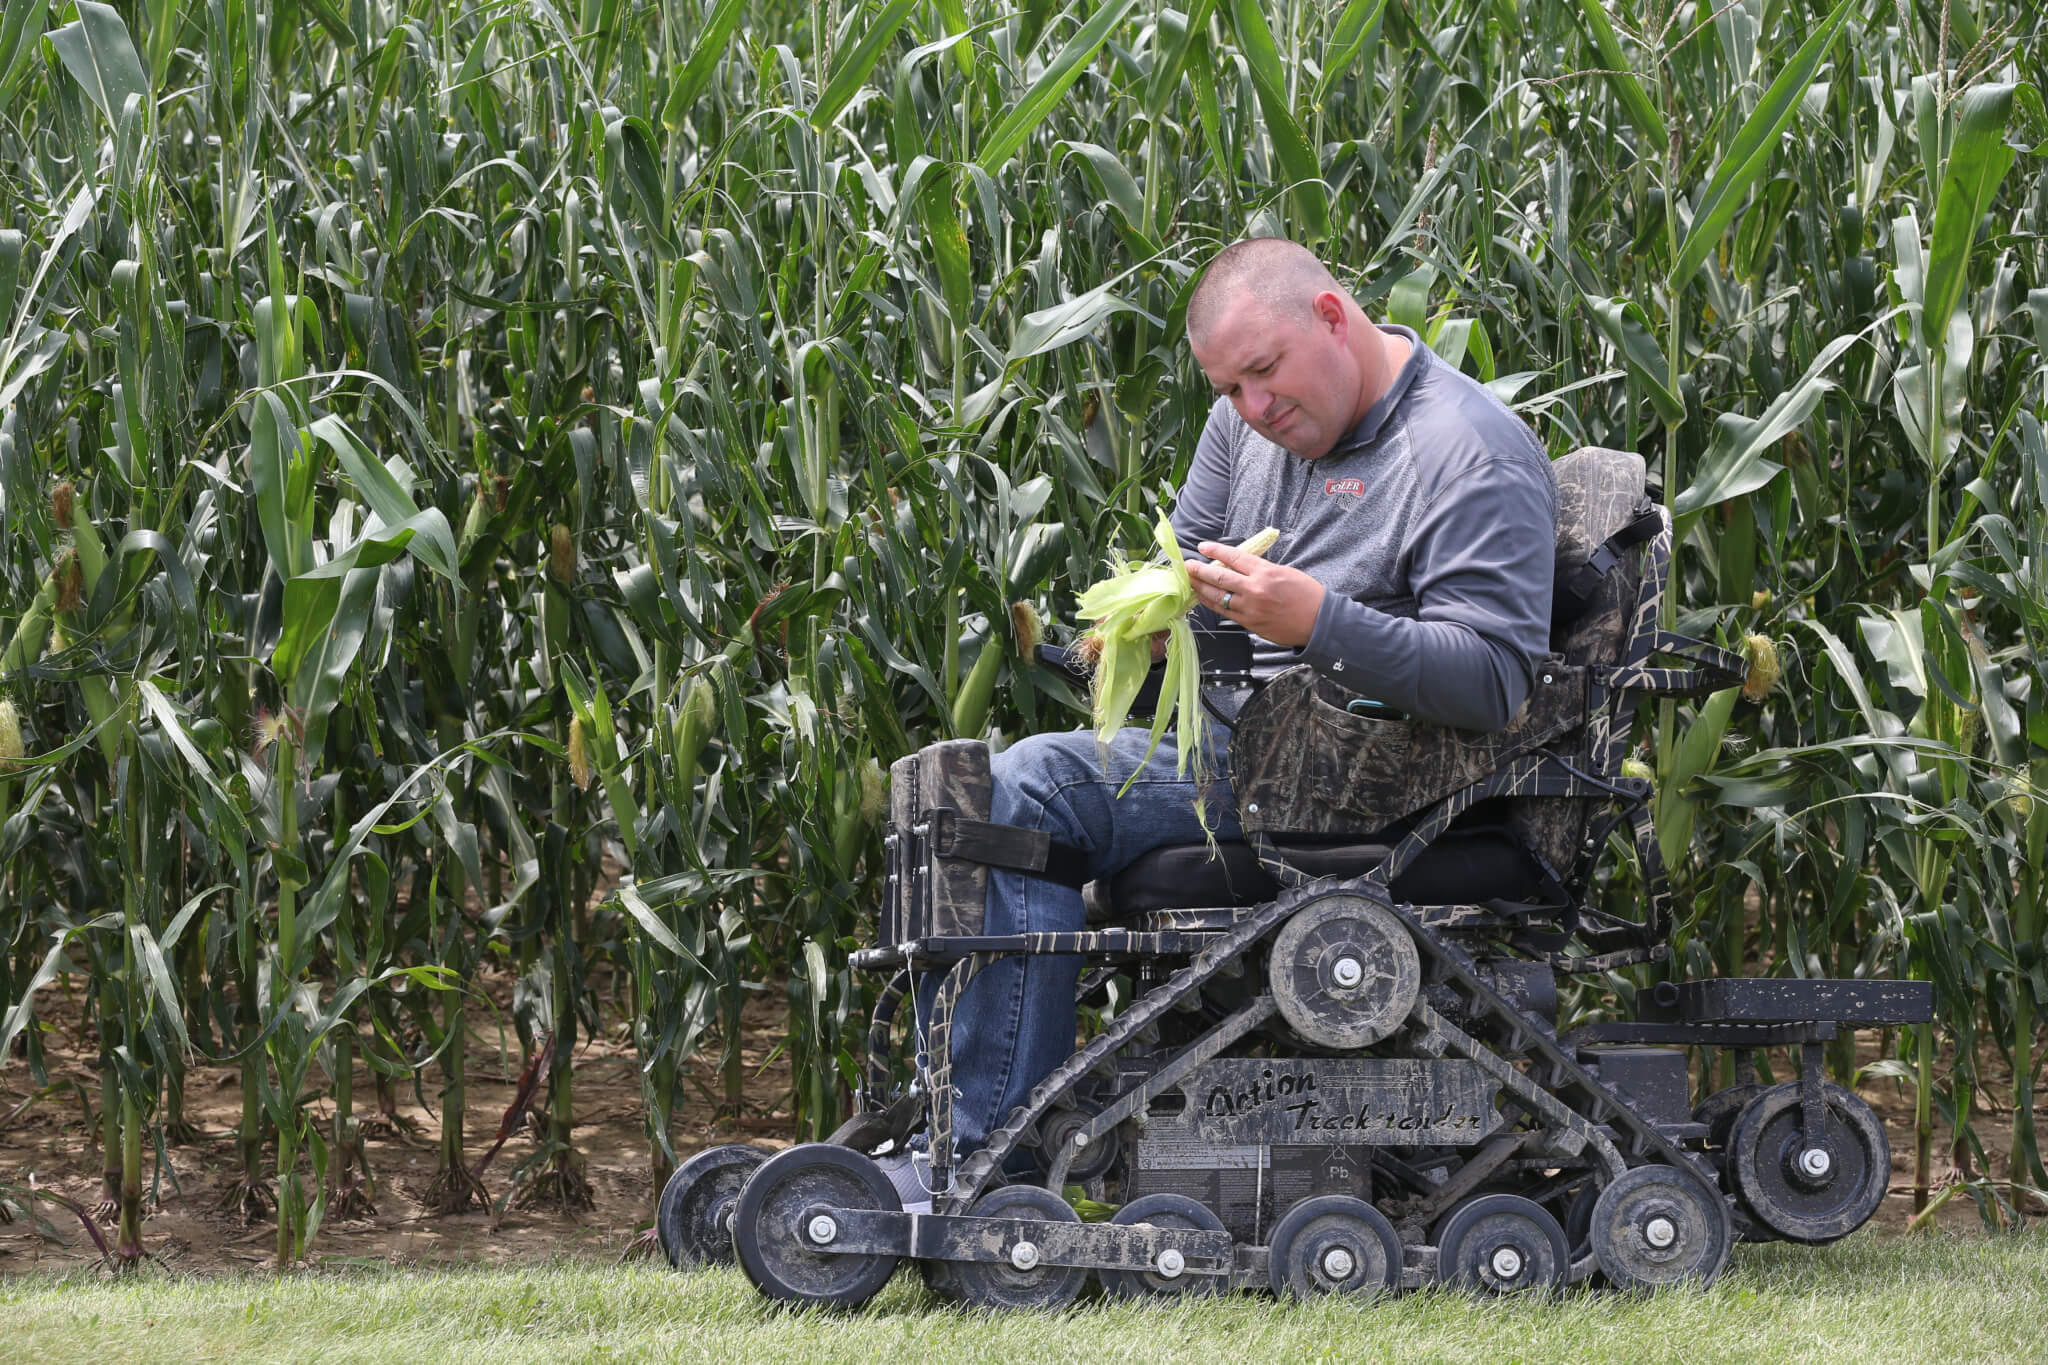 Justin is a disabled farmer who farms over 3,000 acres of ground in Huntington County, with the help of Purdue Extension and AgrAbility.